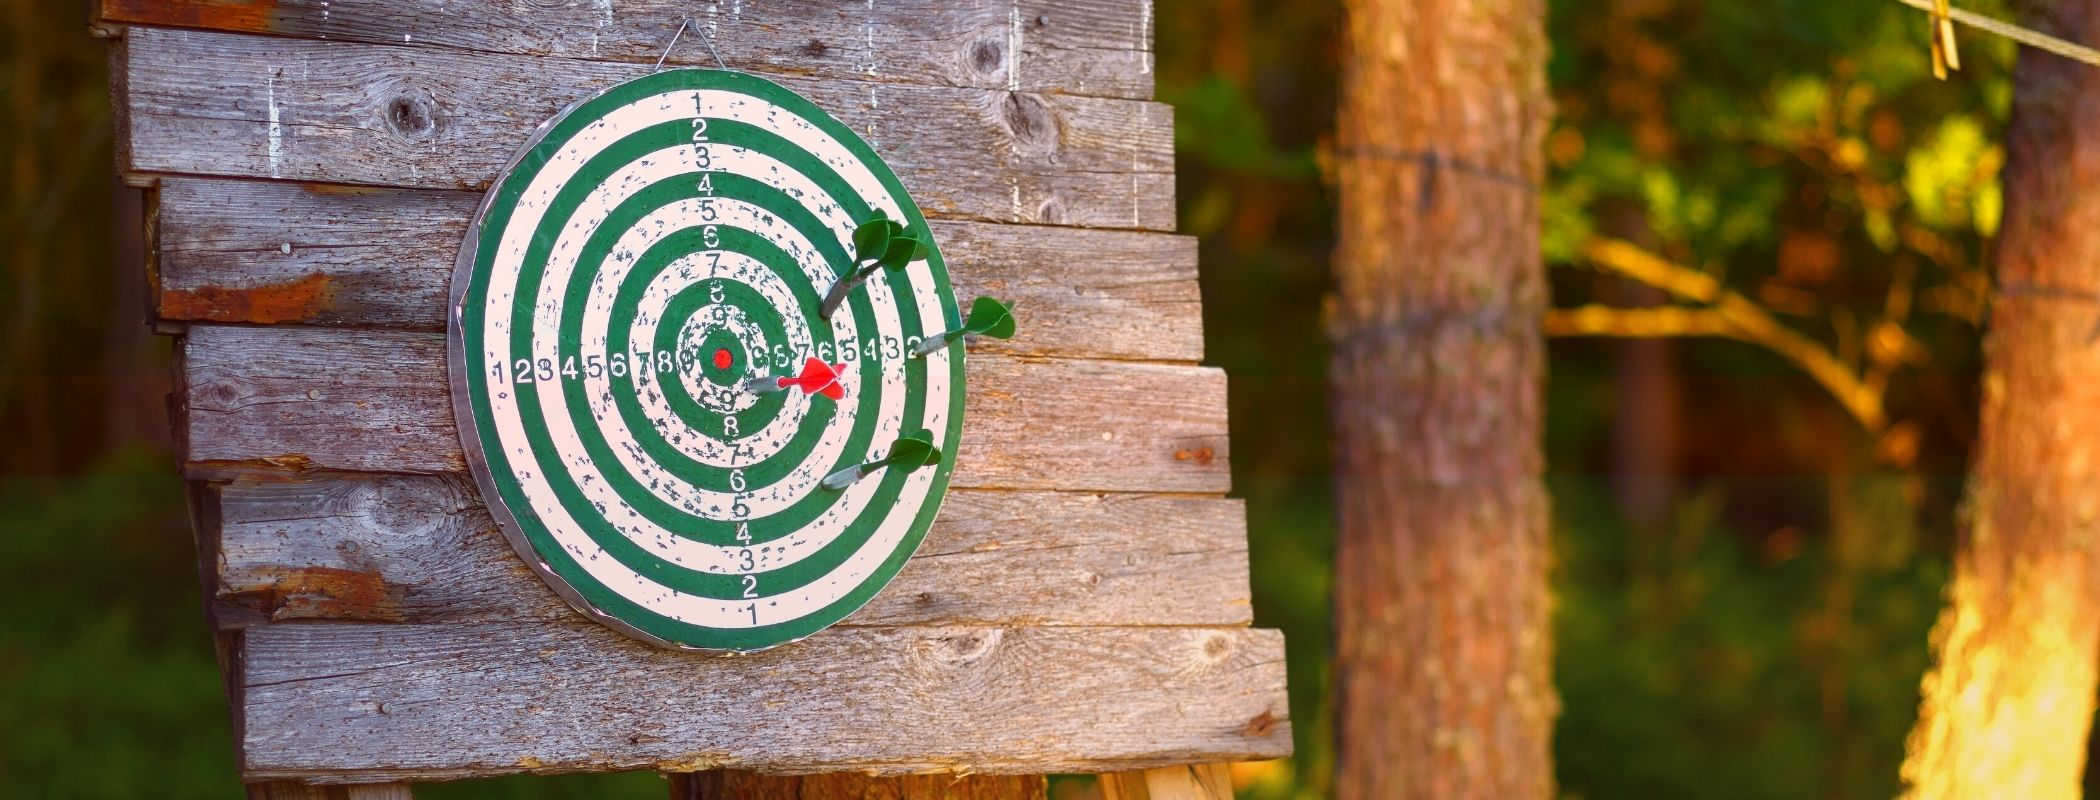 Best Dart Board For Outside For 2021 ( Ultimate Choice To Have Fun)